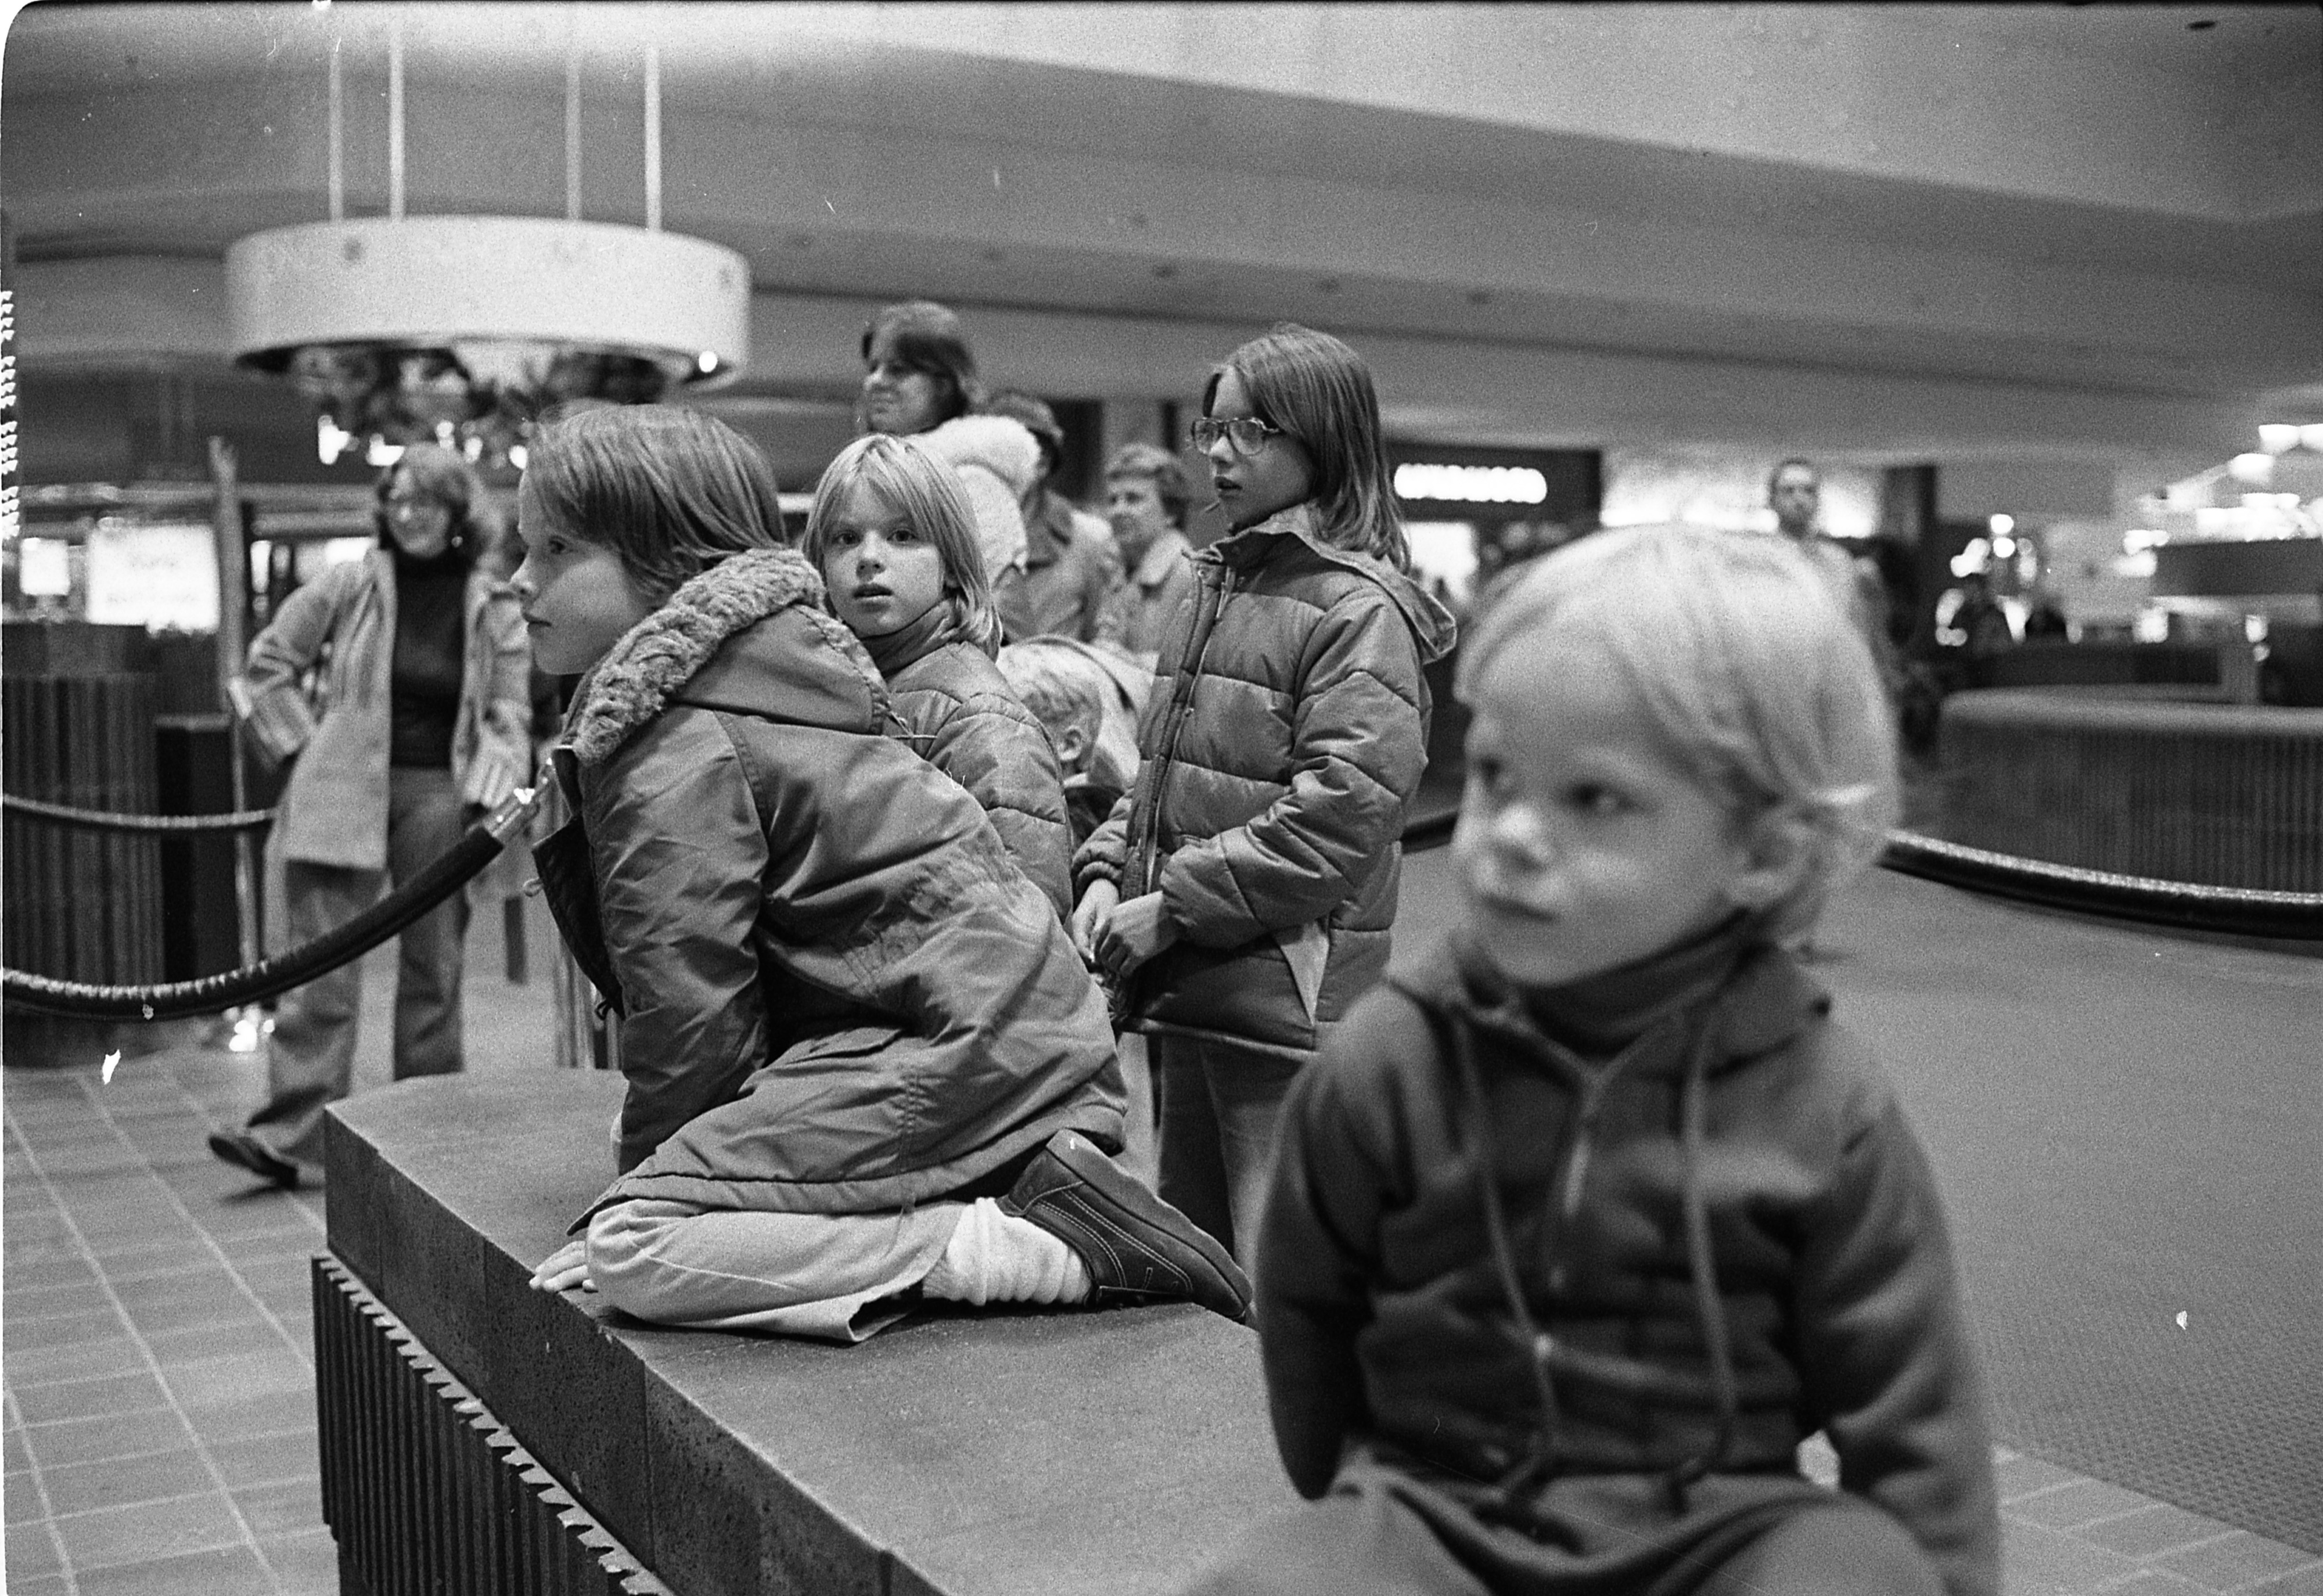 Children Await Santa's Arrival At Briarwood Mall, December 4, 1977 image